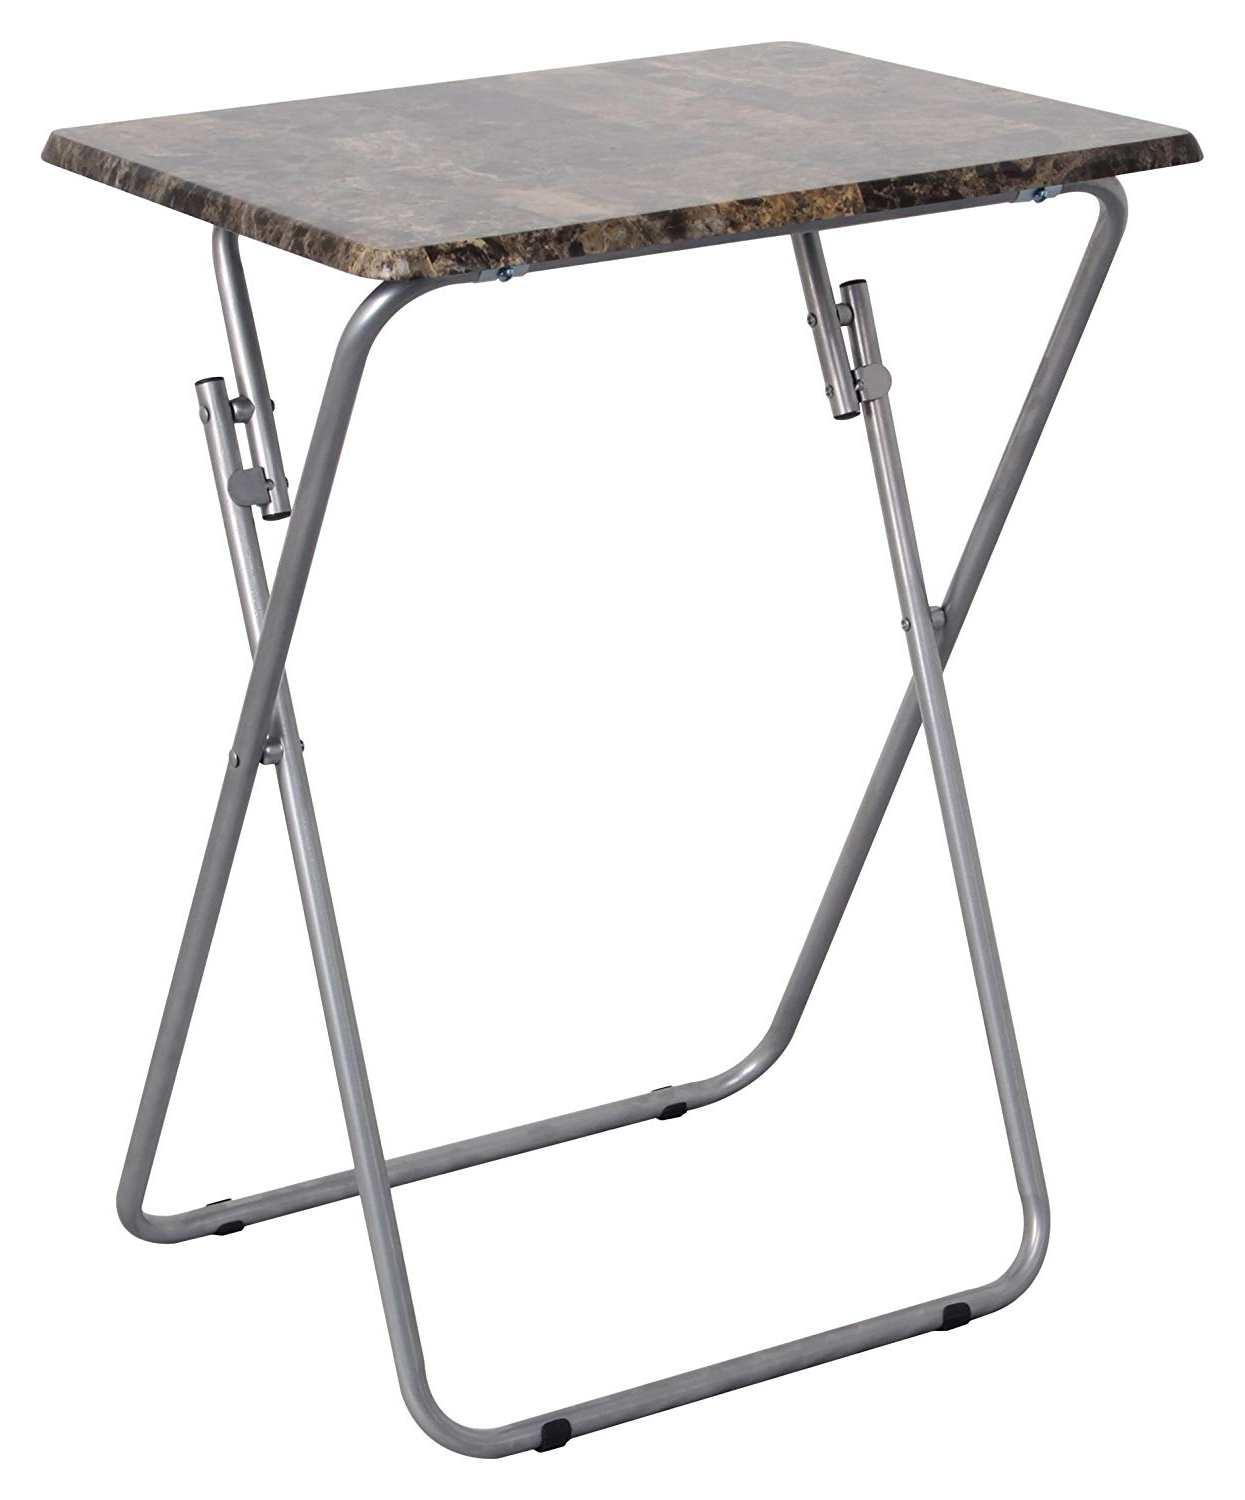 Amazon: Above Edge Folding Tv & Snack Tray Table, Marble: Garden Within Current Folding Tv Trays With Stand (View 2 of 20)